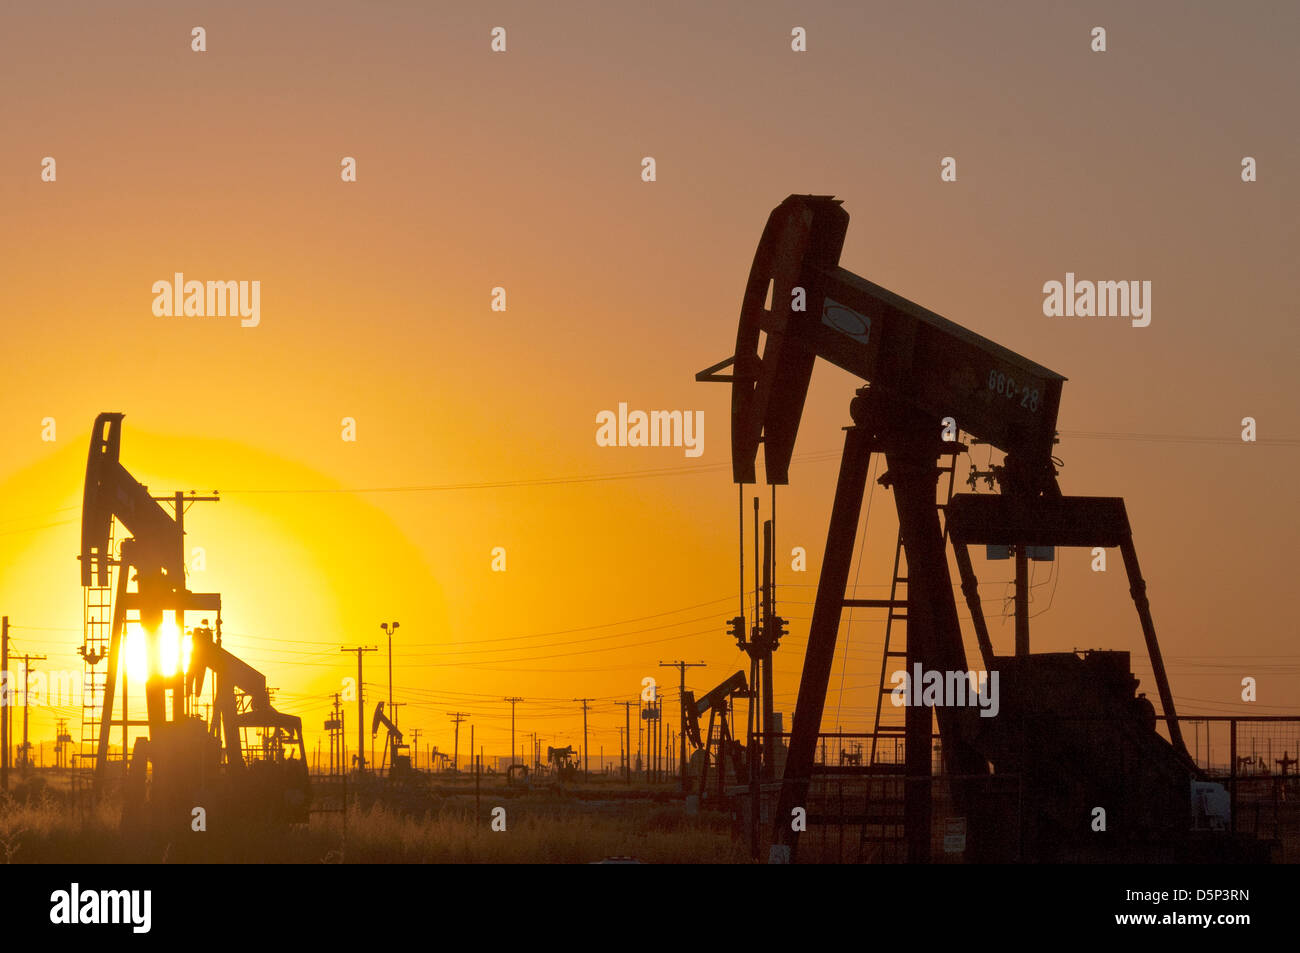 Oil pumps at sunset in California - Stock Image